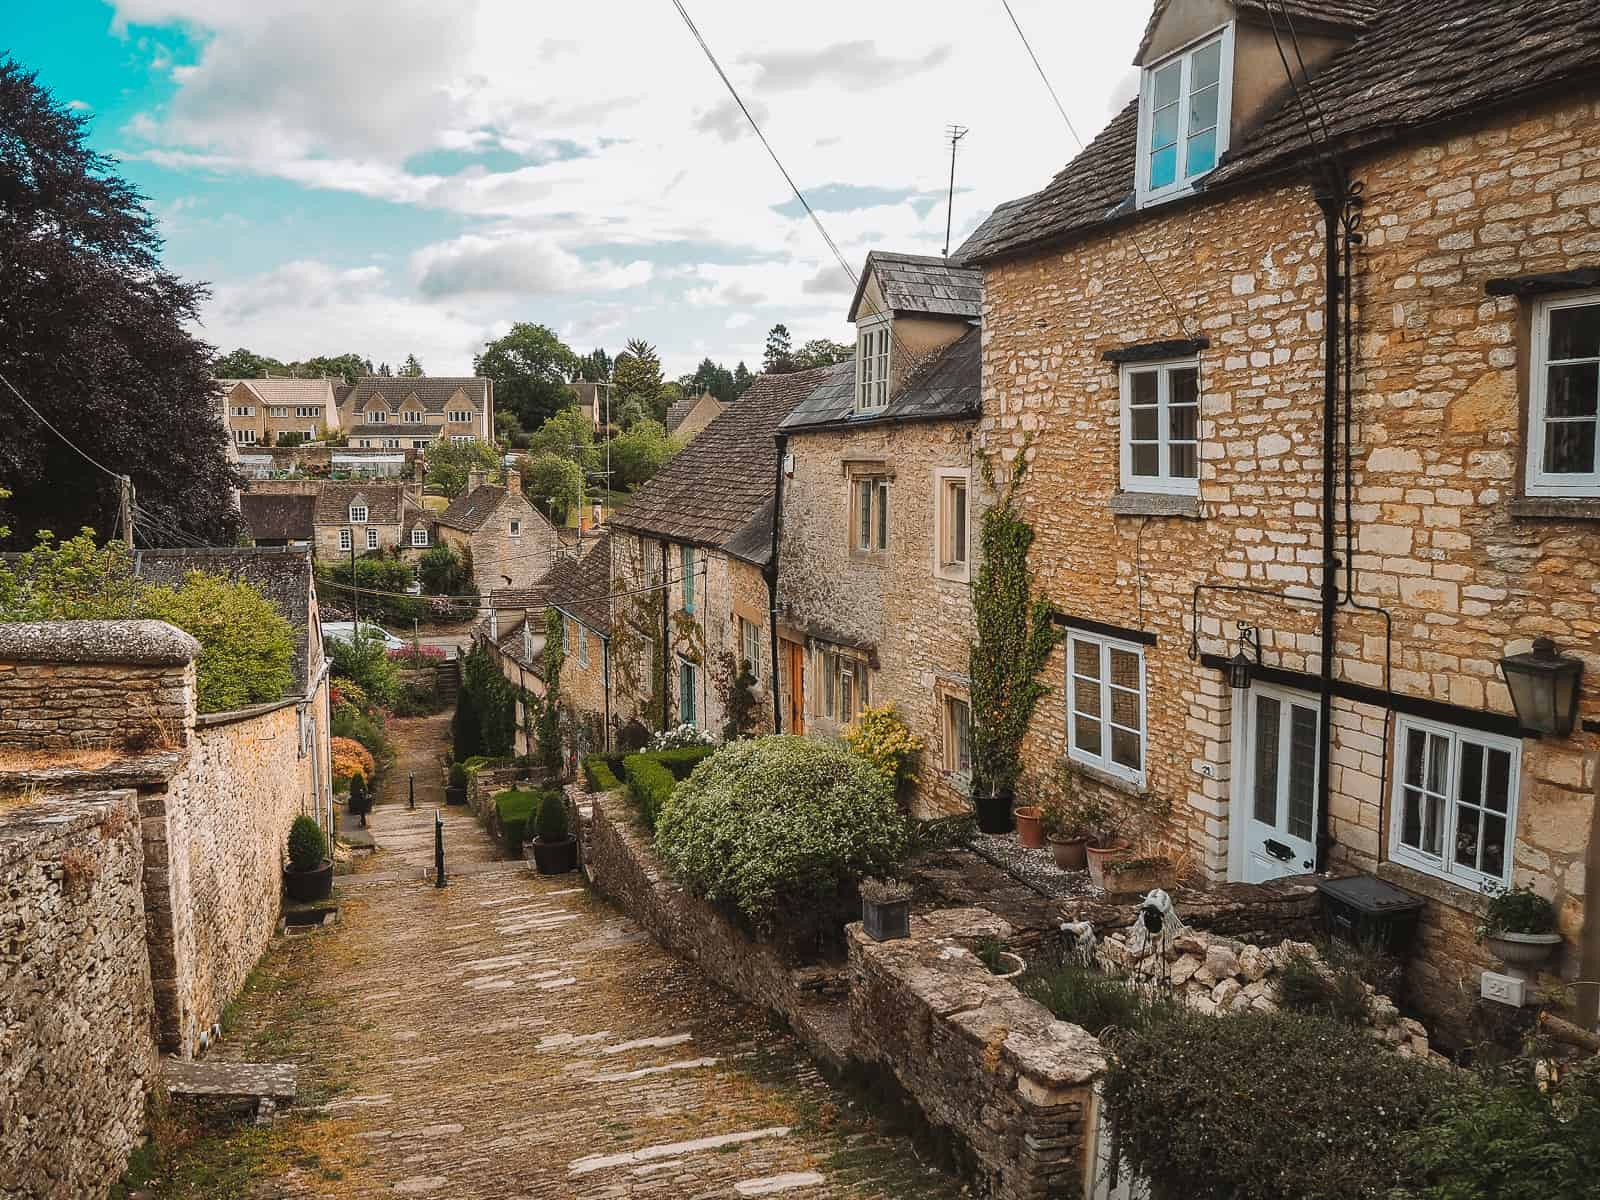 Things to do in Tetbury Cotswolds | Chipping Steps Tetbury